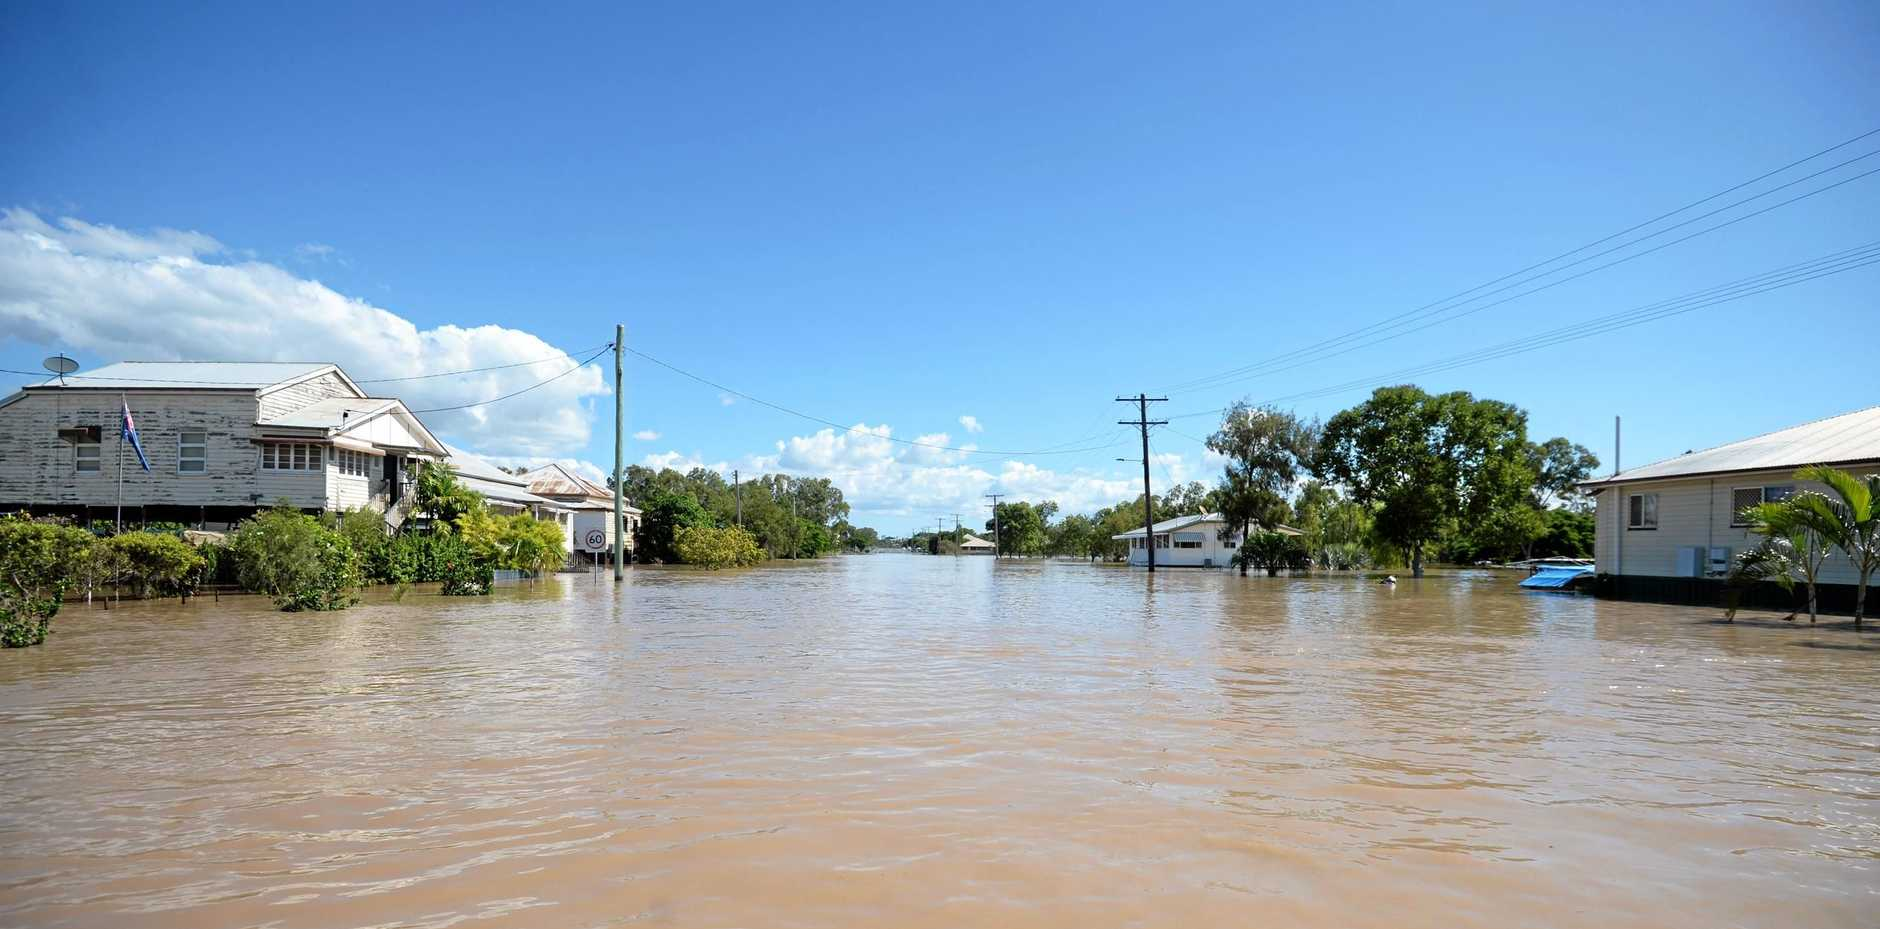 Rockhampton's streets were flooded after Cyclone Debbie hit in April last year.